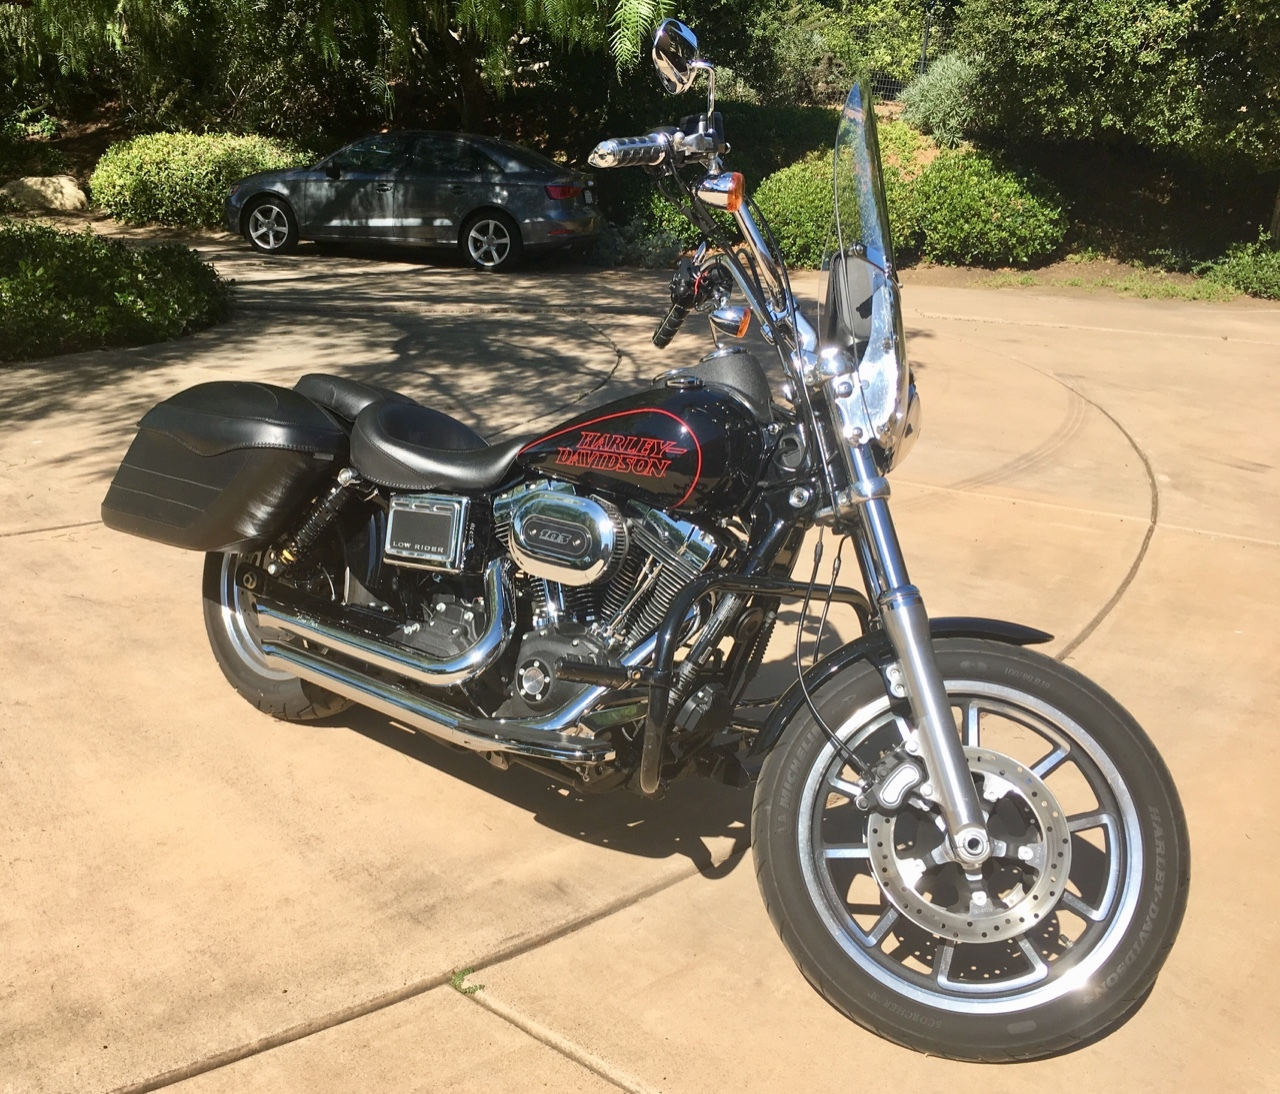 Dyna For Sale - Harley-Davidson Motorcycles - Cycle Trader